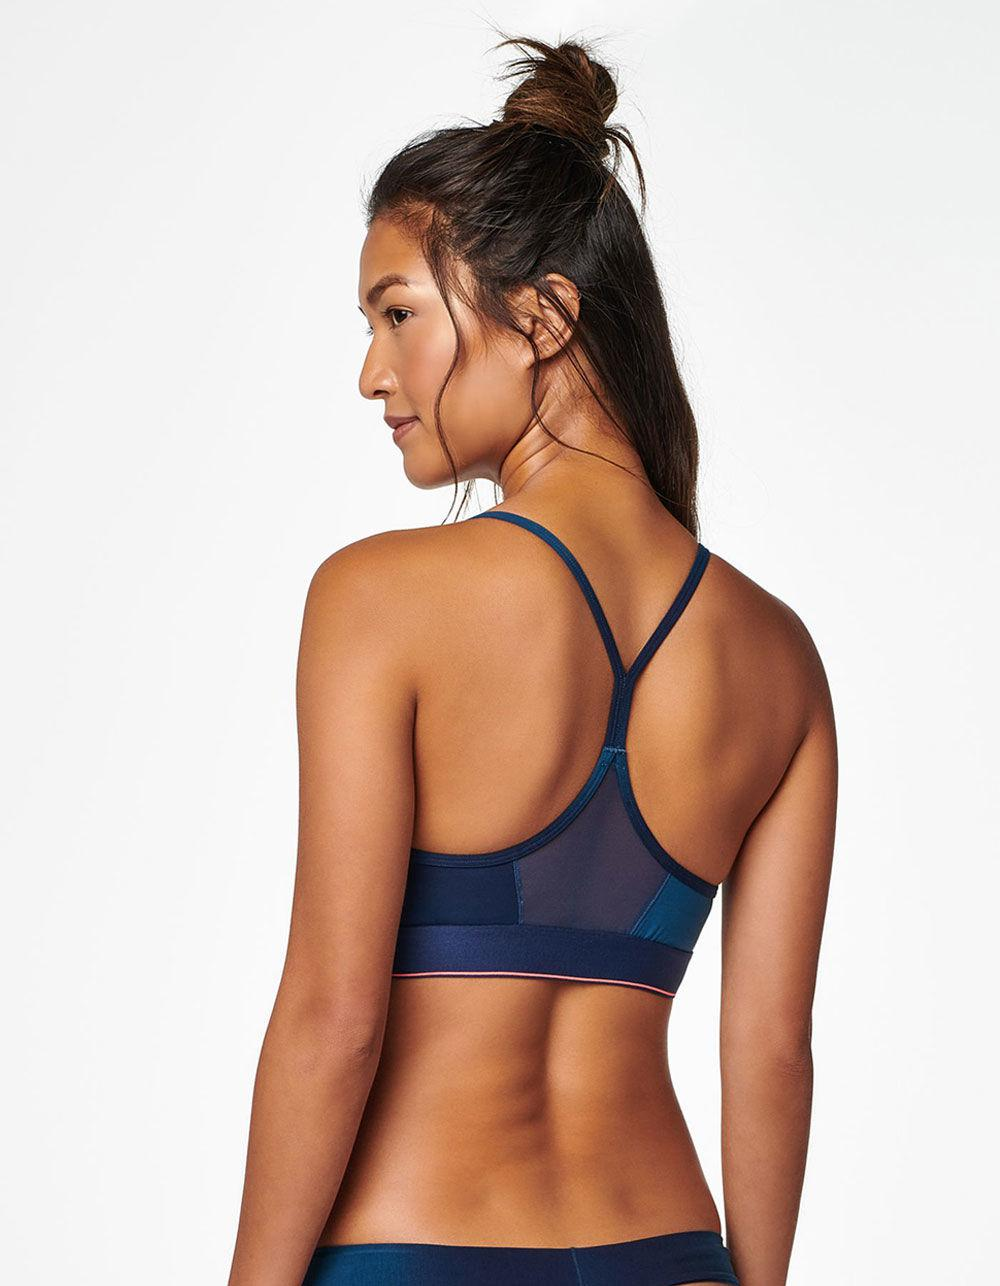 a49db3b228 Lyst - Stance Tomboy Cotton Bralette in Blue